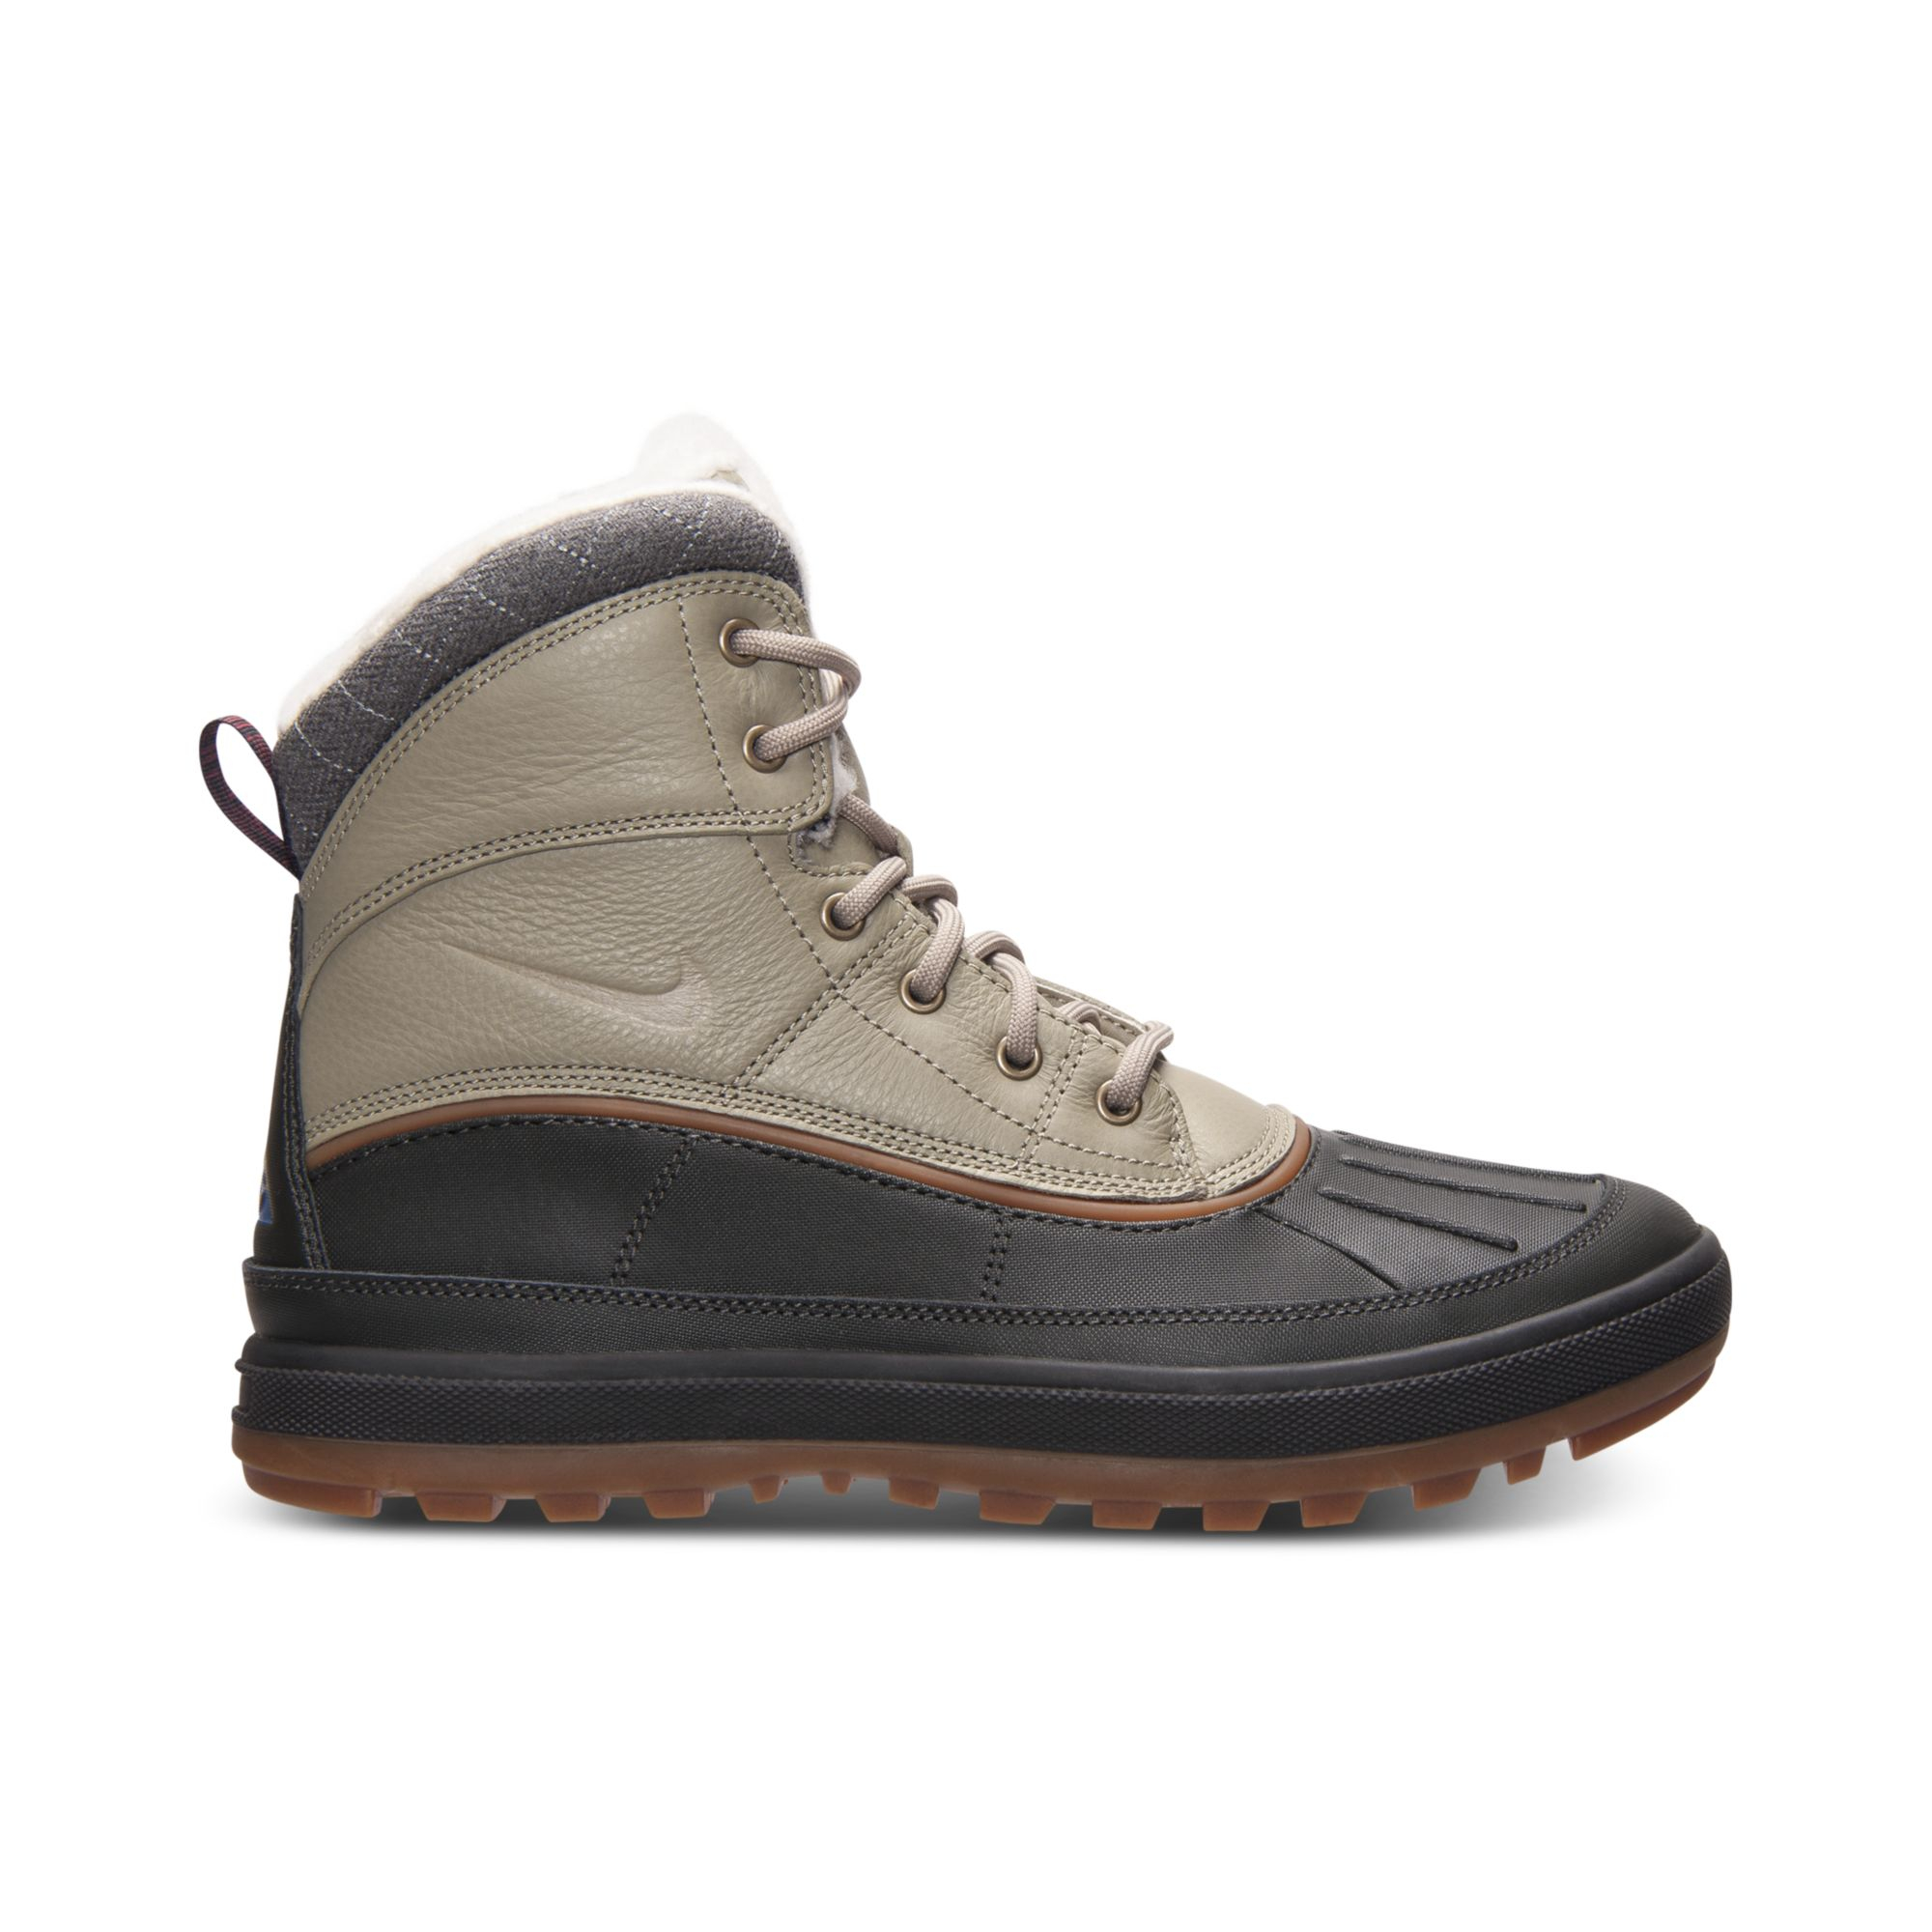 4d340fa11714a7 nike woodside hiking boot